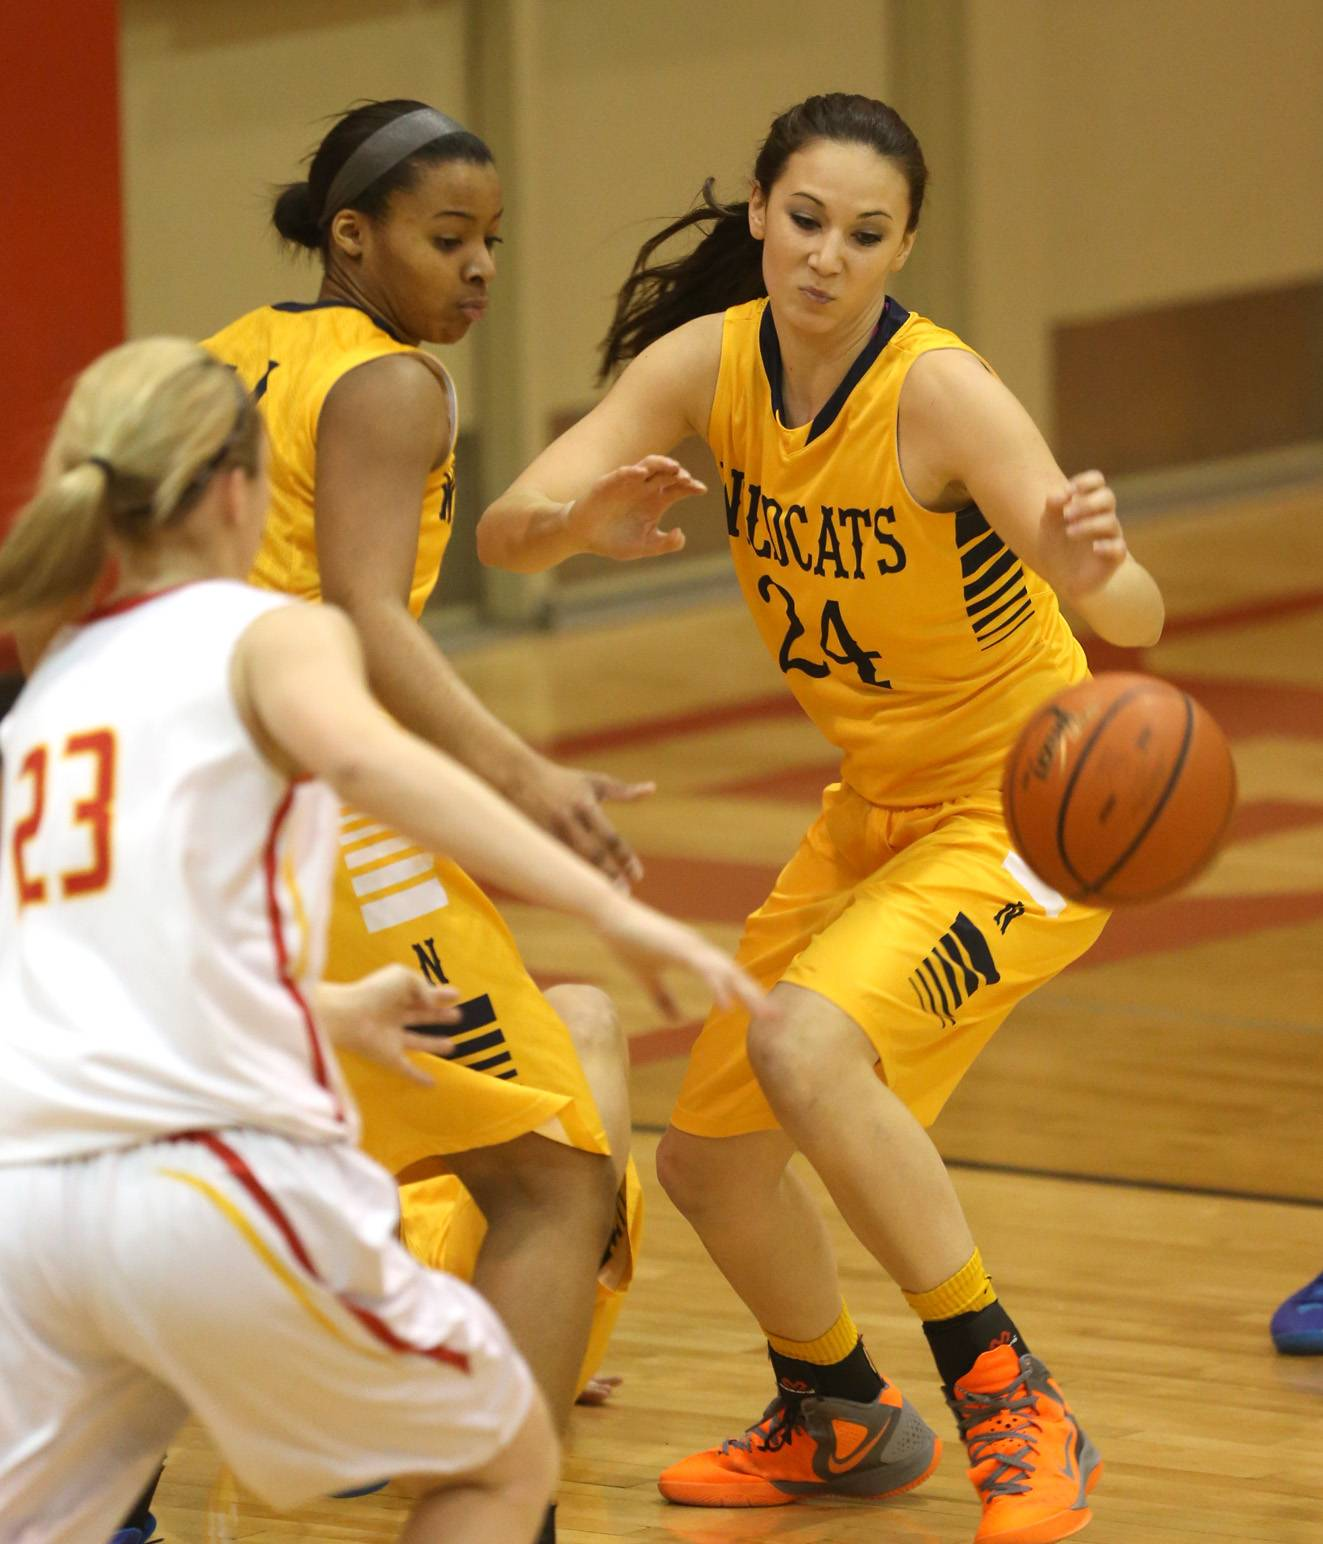 Neuqua Valley's Bryce Menendez (24) eyes the ball against Batavia during girls basketball action Friday, in Batavia.